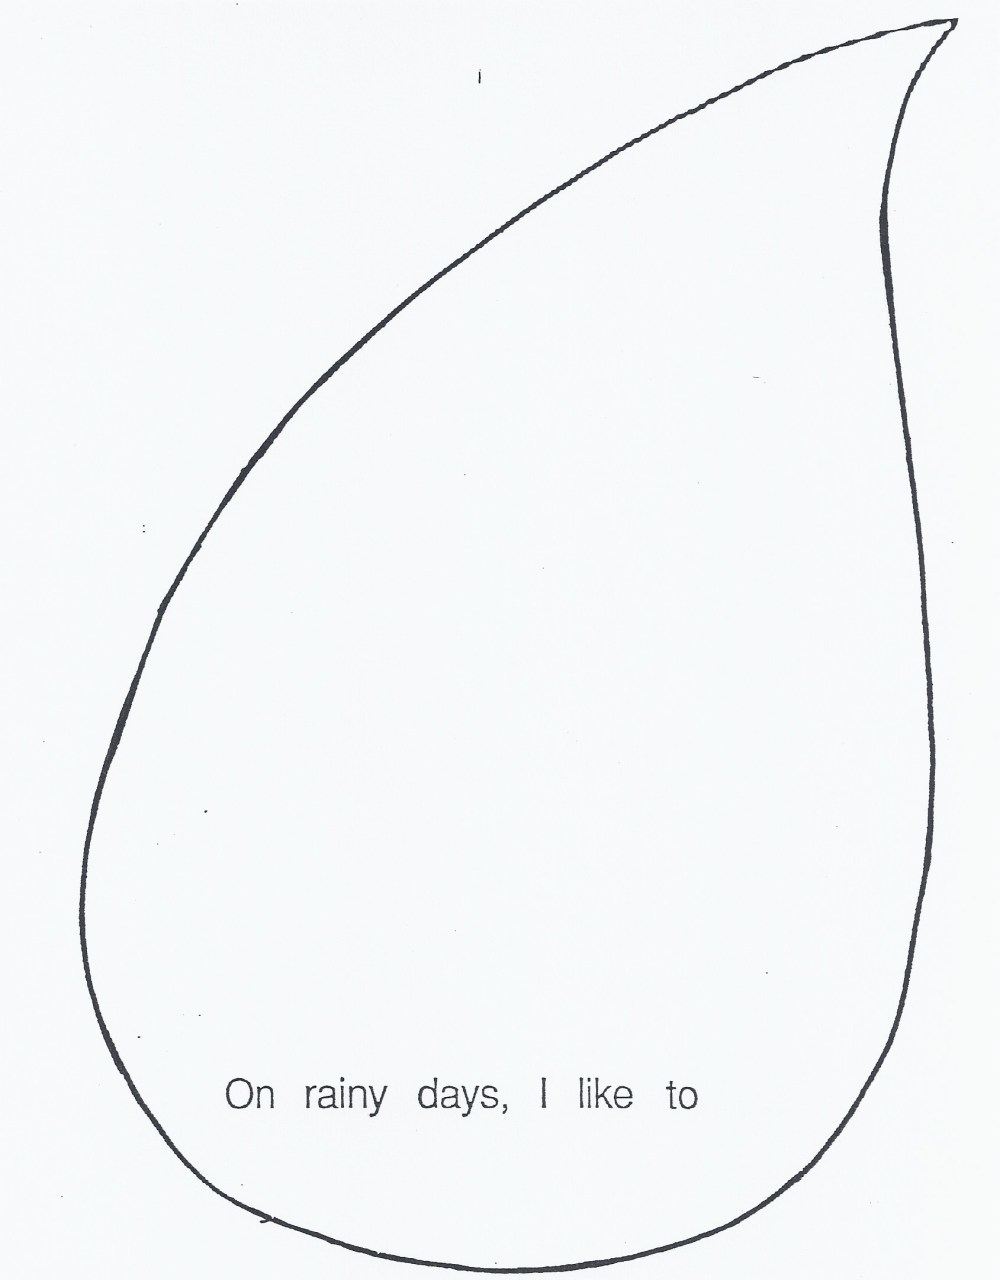 medium resolution of images for raindrops clipart